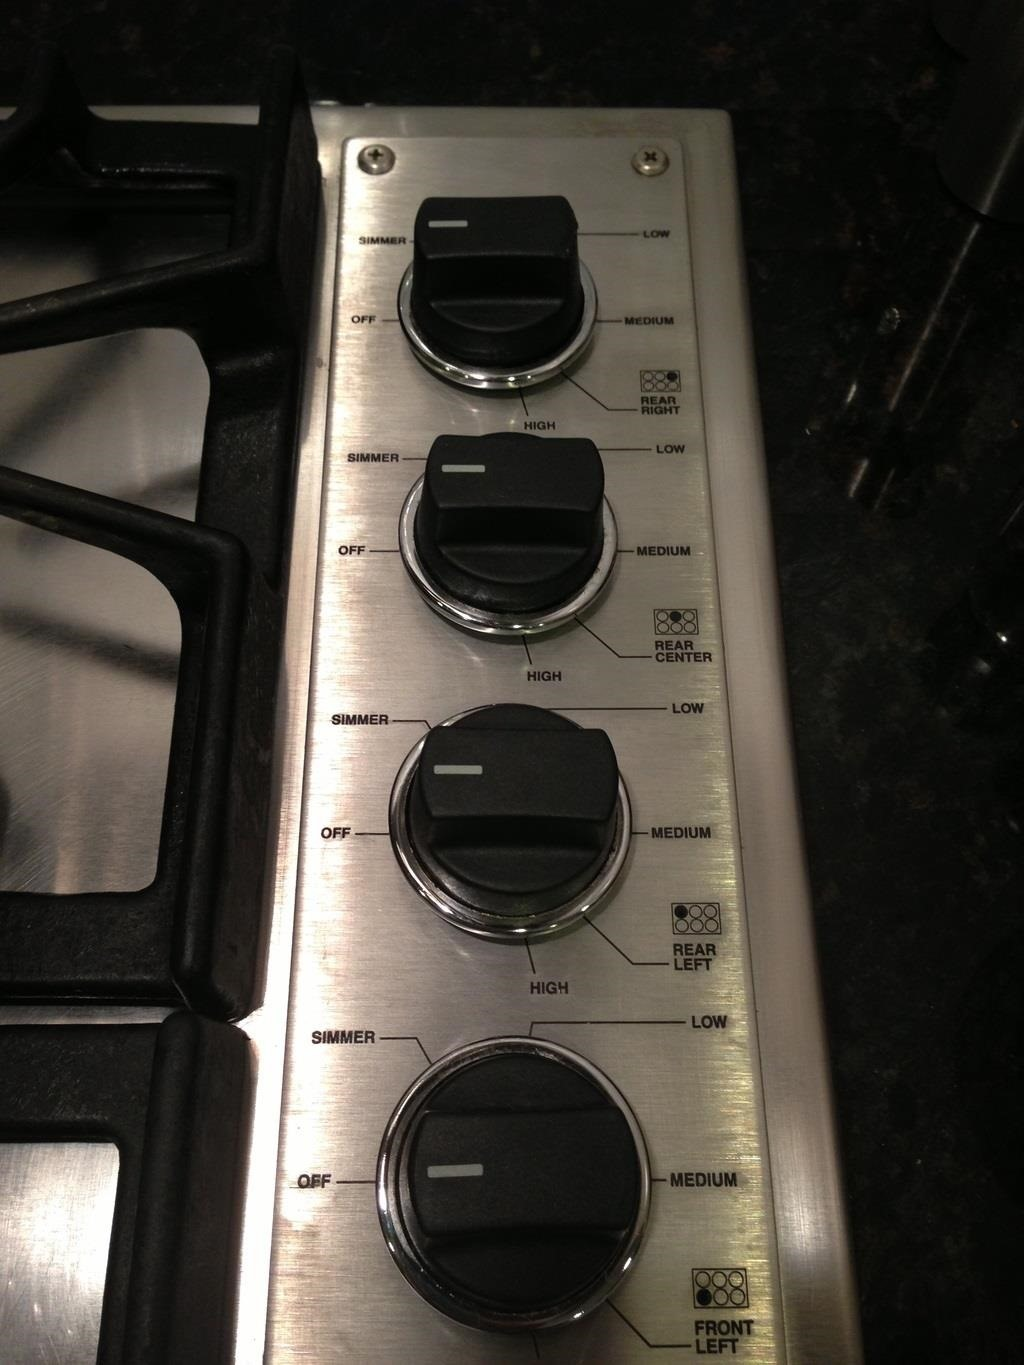 How to Replace Worn Off Lettering on Home Appliances with Sugru